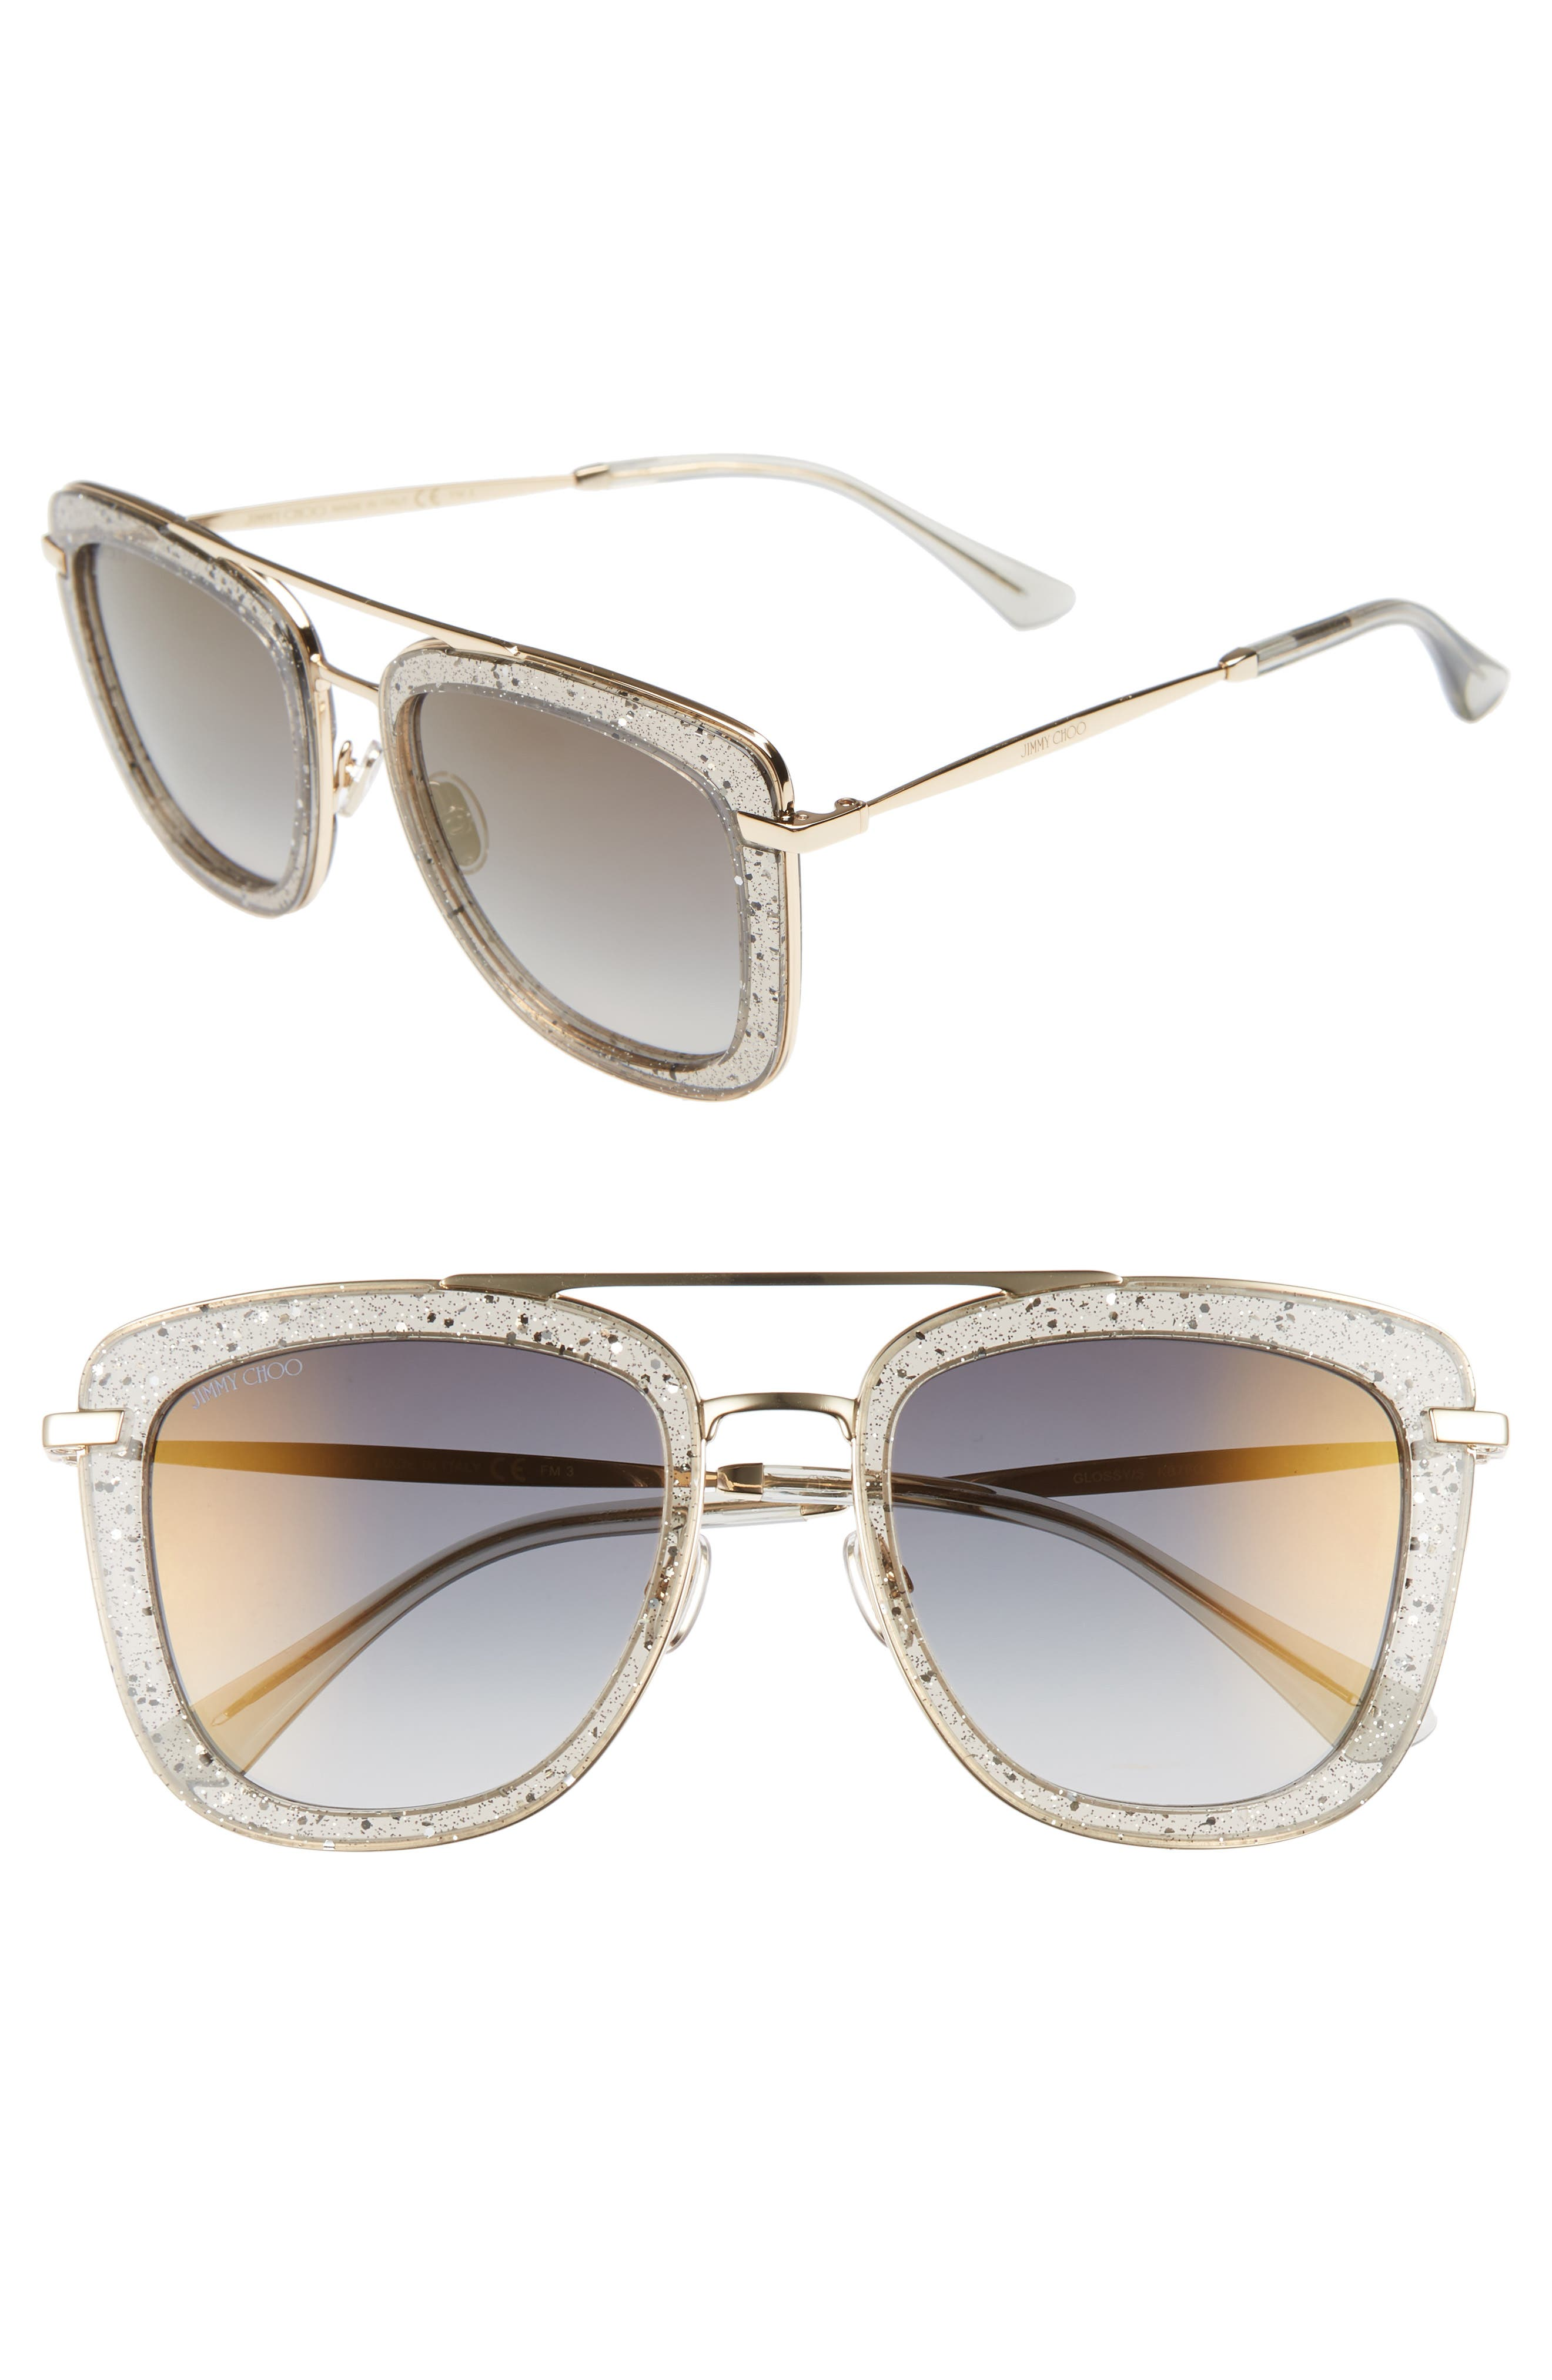 Jimmy Choo Glossy 5m Square Sunglasses - Grey/ Gold